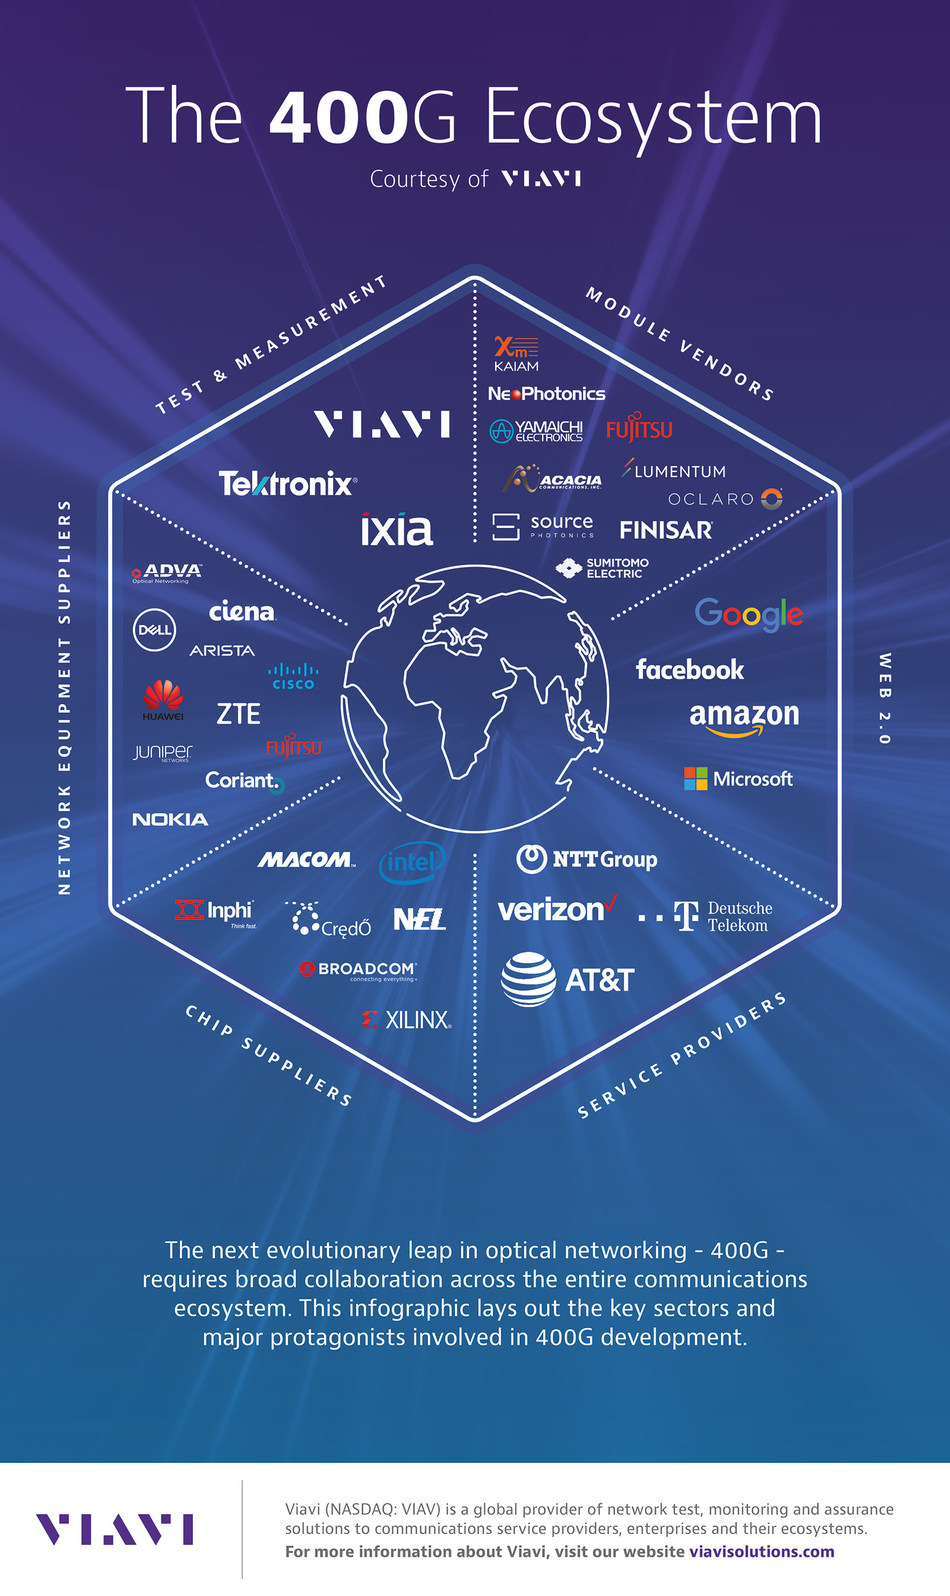 The next evolutionary leap in optical networking - 400G - requires broad collaboration across the entire communications ecosystem. This infographic lays out the key sectors and major protagonists involved.